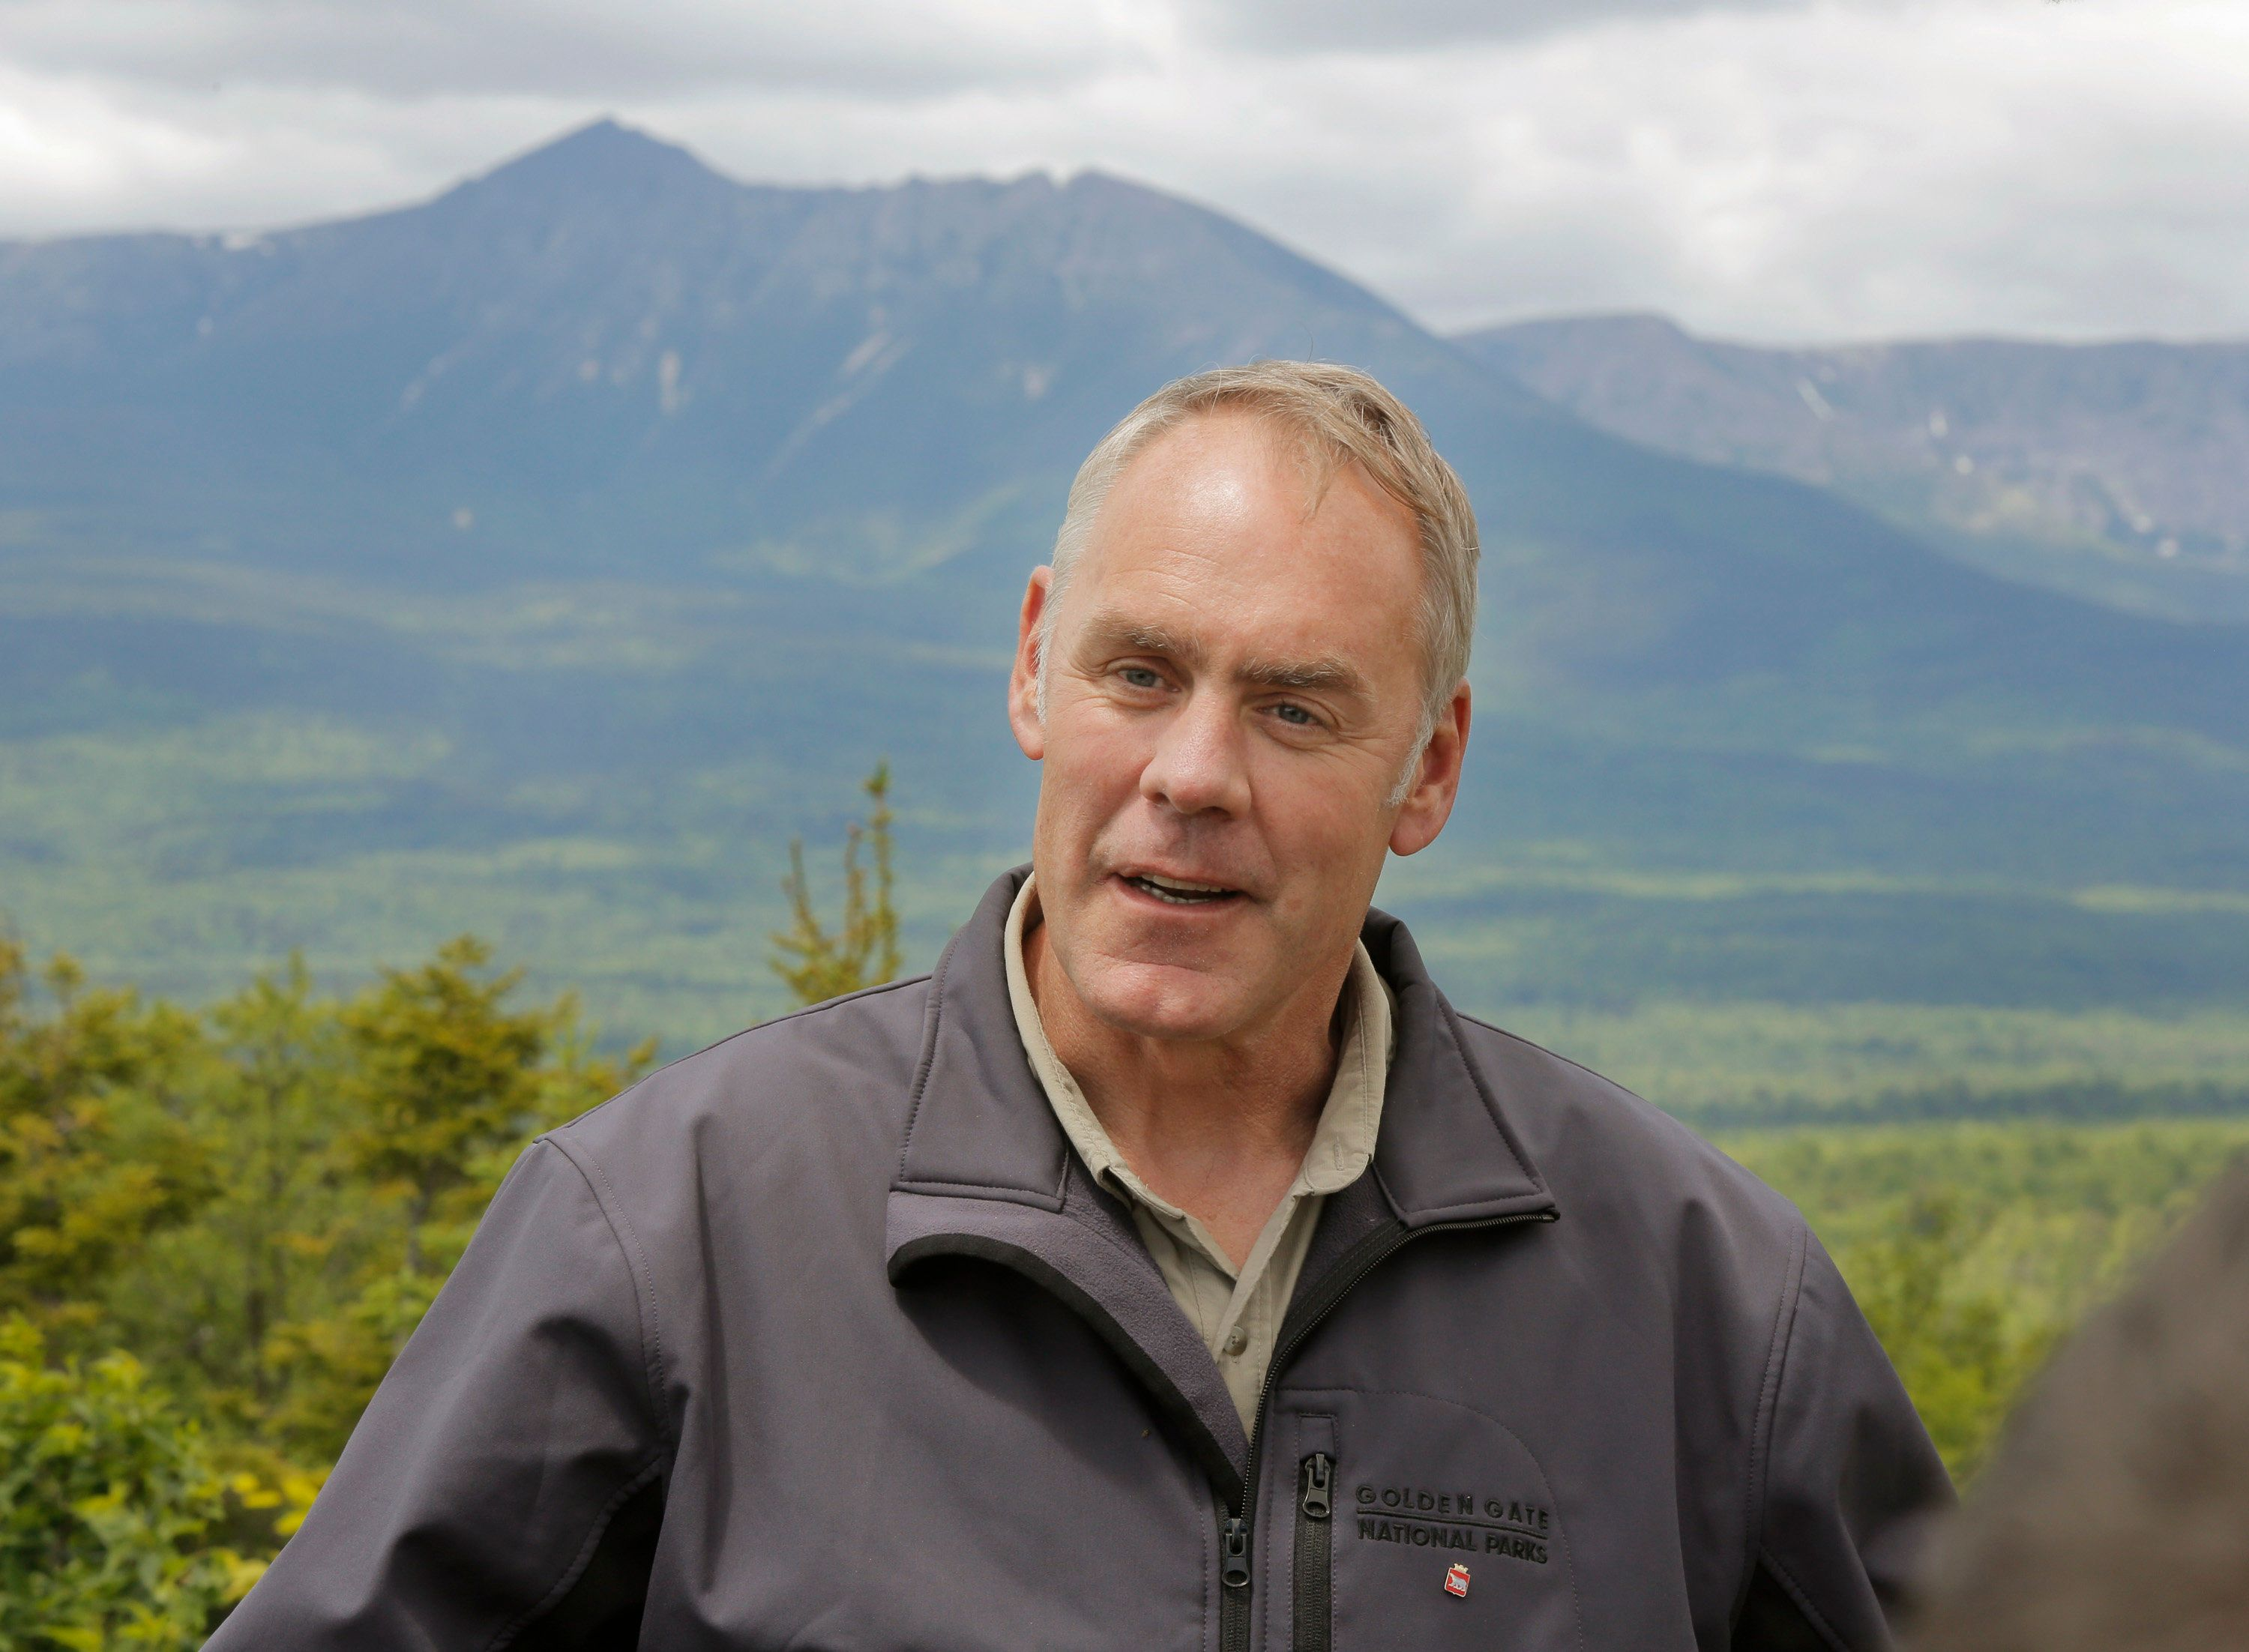 KATAHDIN WOODS AND WATERS NATIONAL MONUMENT, ME - JUNE 14: With Mount Katahdin in the background, Interior Secretary Ryan Zinke talks to the media during a tour of the Katahdin Woods & Waters National Monument on Wednesday, June 14, 2017. Zinke was touring the monument because it is one of dozens of monuments up for review under an executive order from President Trump. (Staff Photo by Gregory Rec/Portland Press Herald via Getty Images)